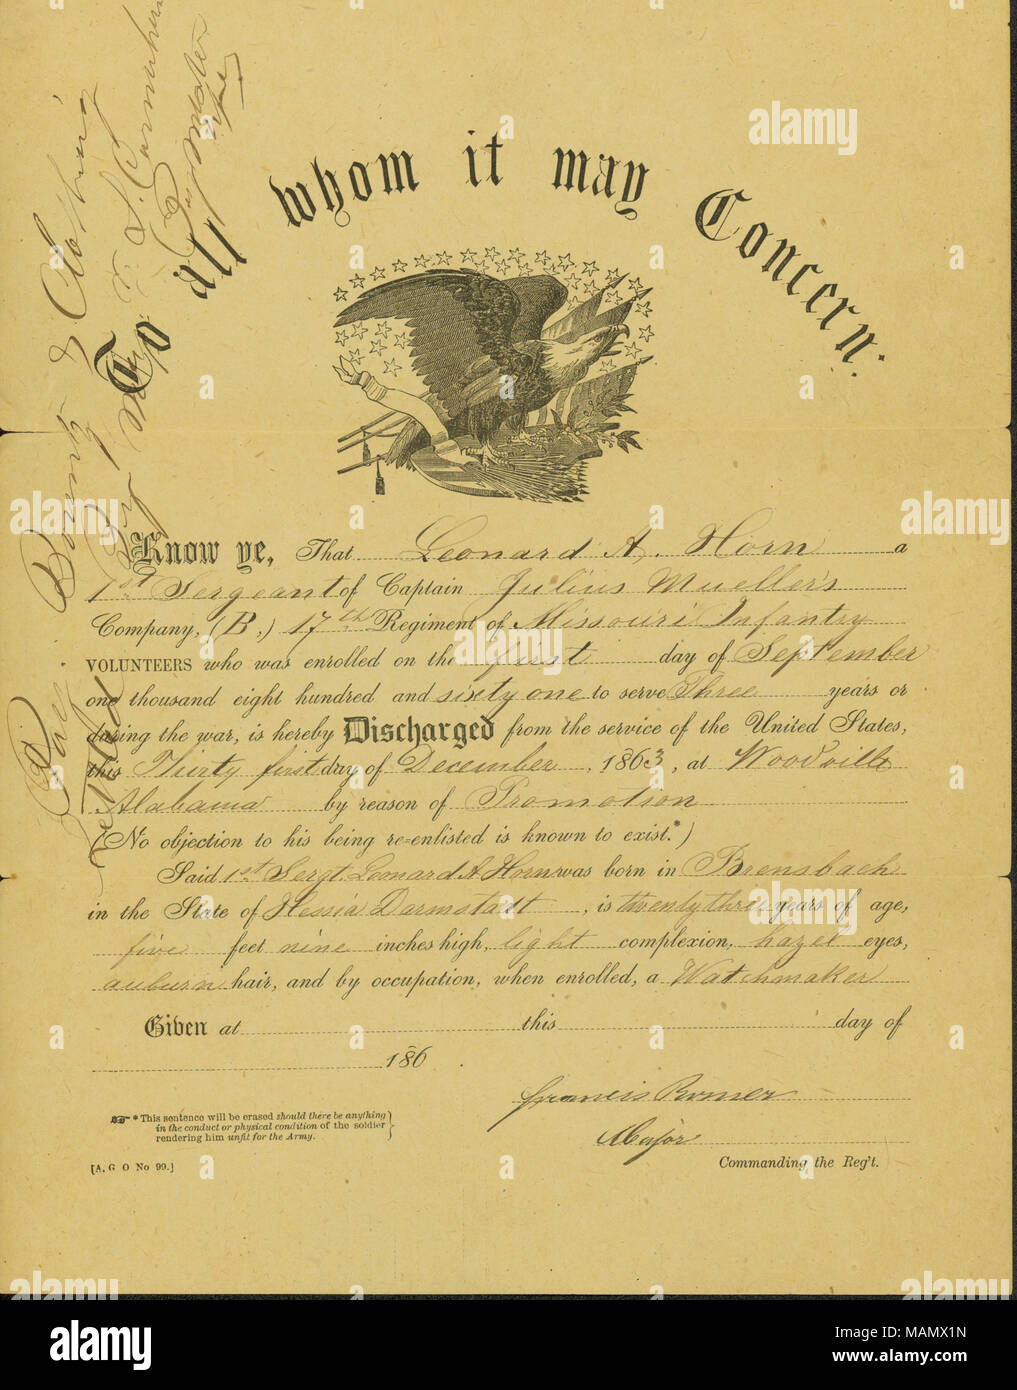 Discharges Horn As 1st Sergeant Of Company B 17th Missouri Infantry